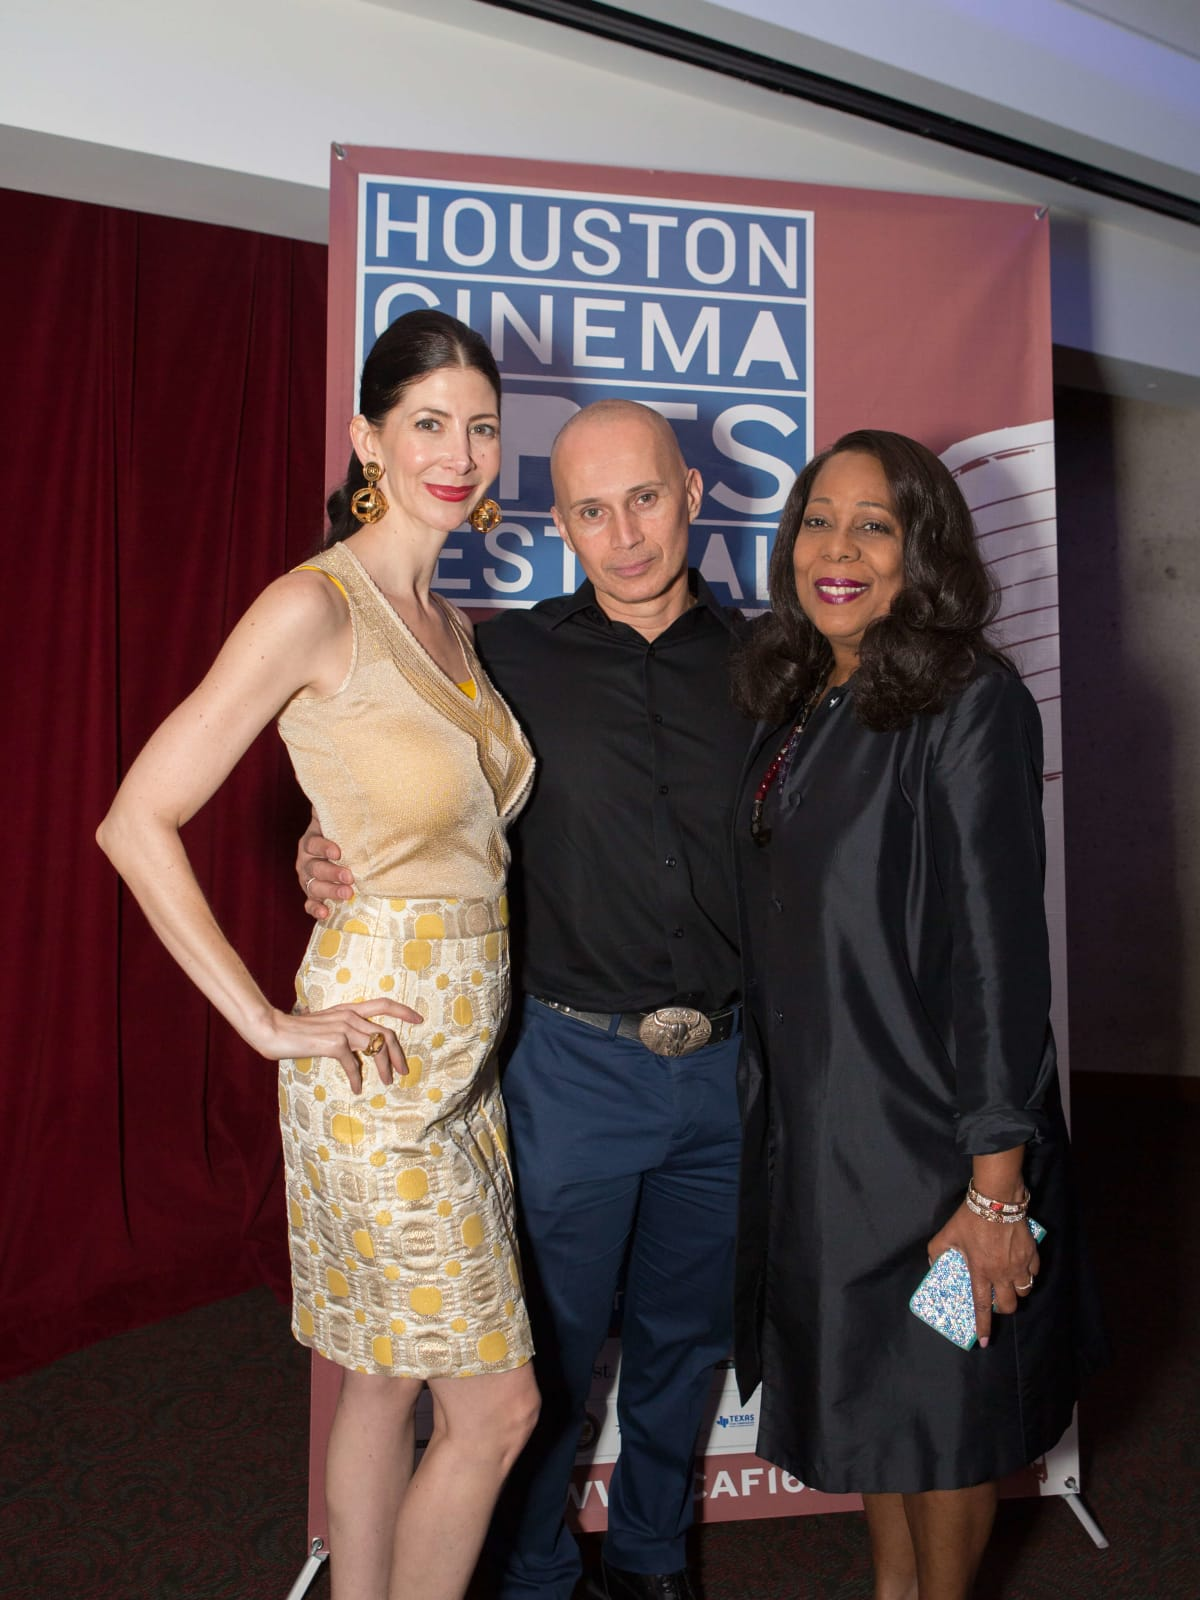 HCAF Kick-Off Party: Mykle Mccoslin, Giovanni Silva, Anita Long